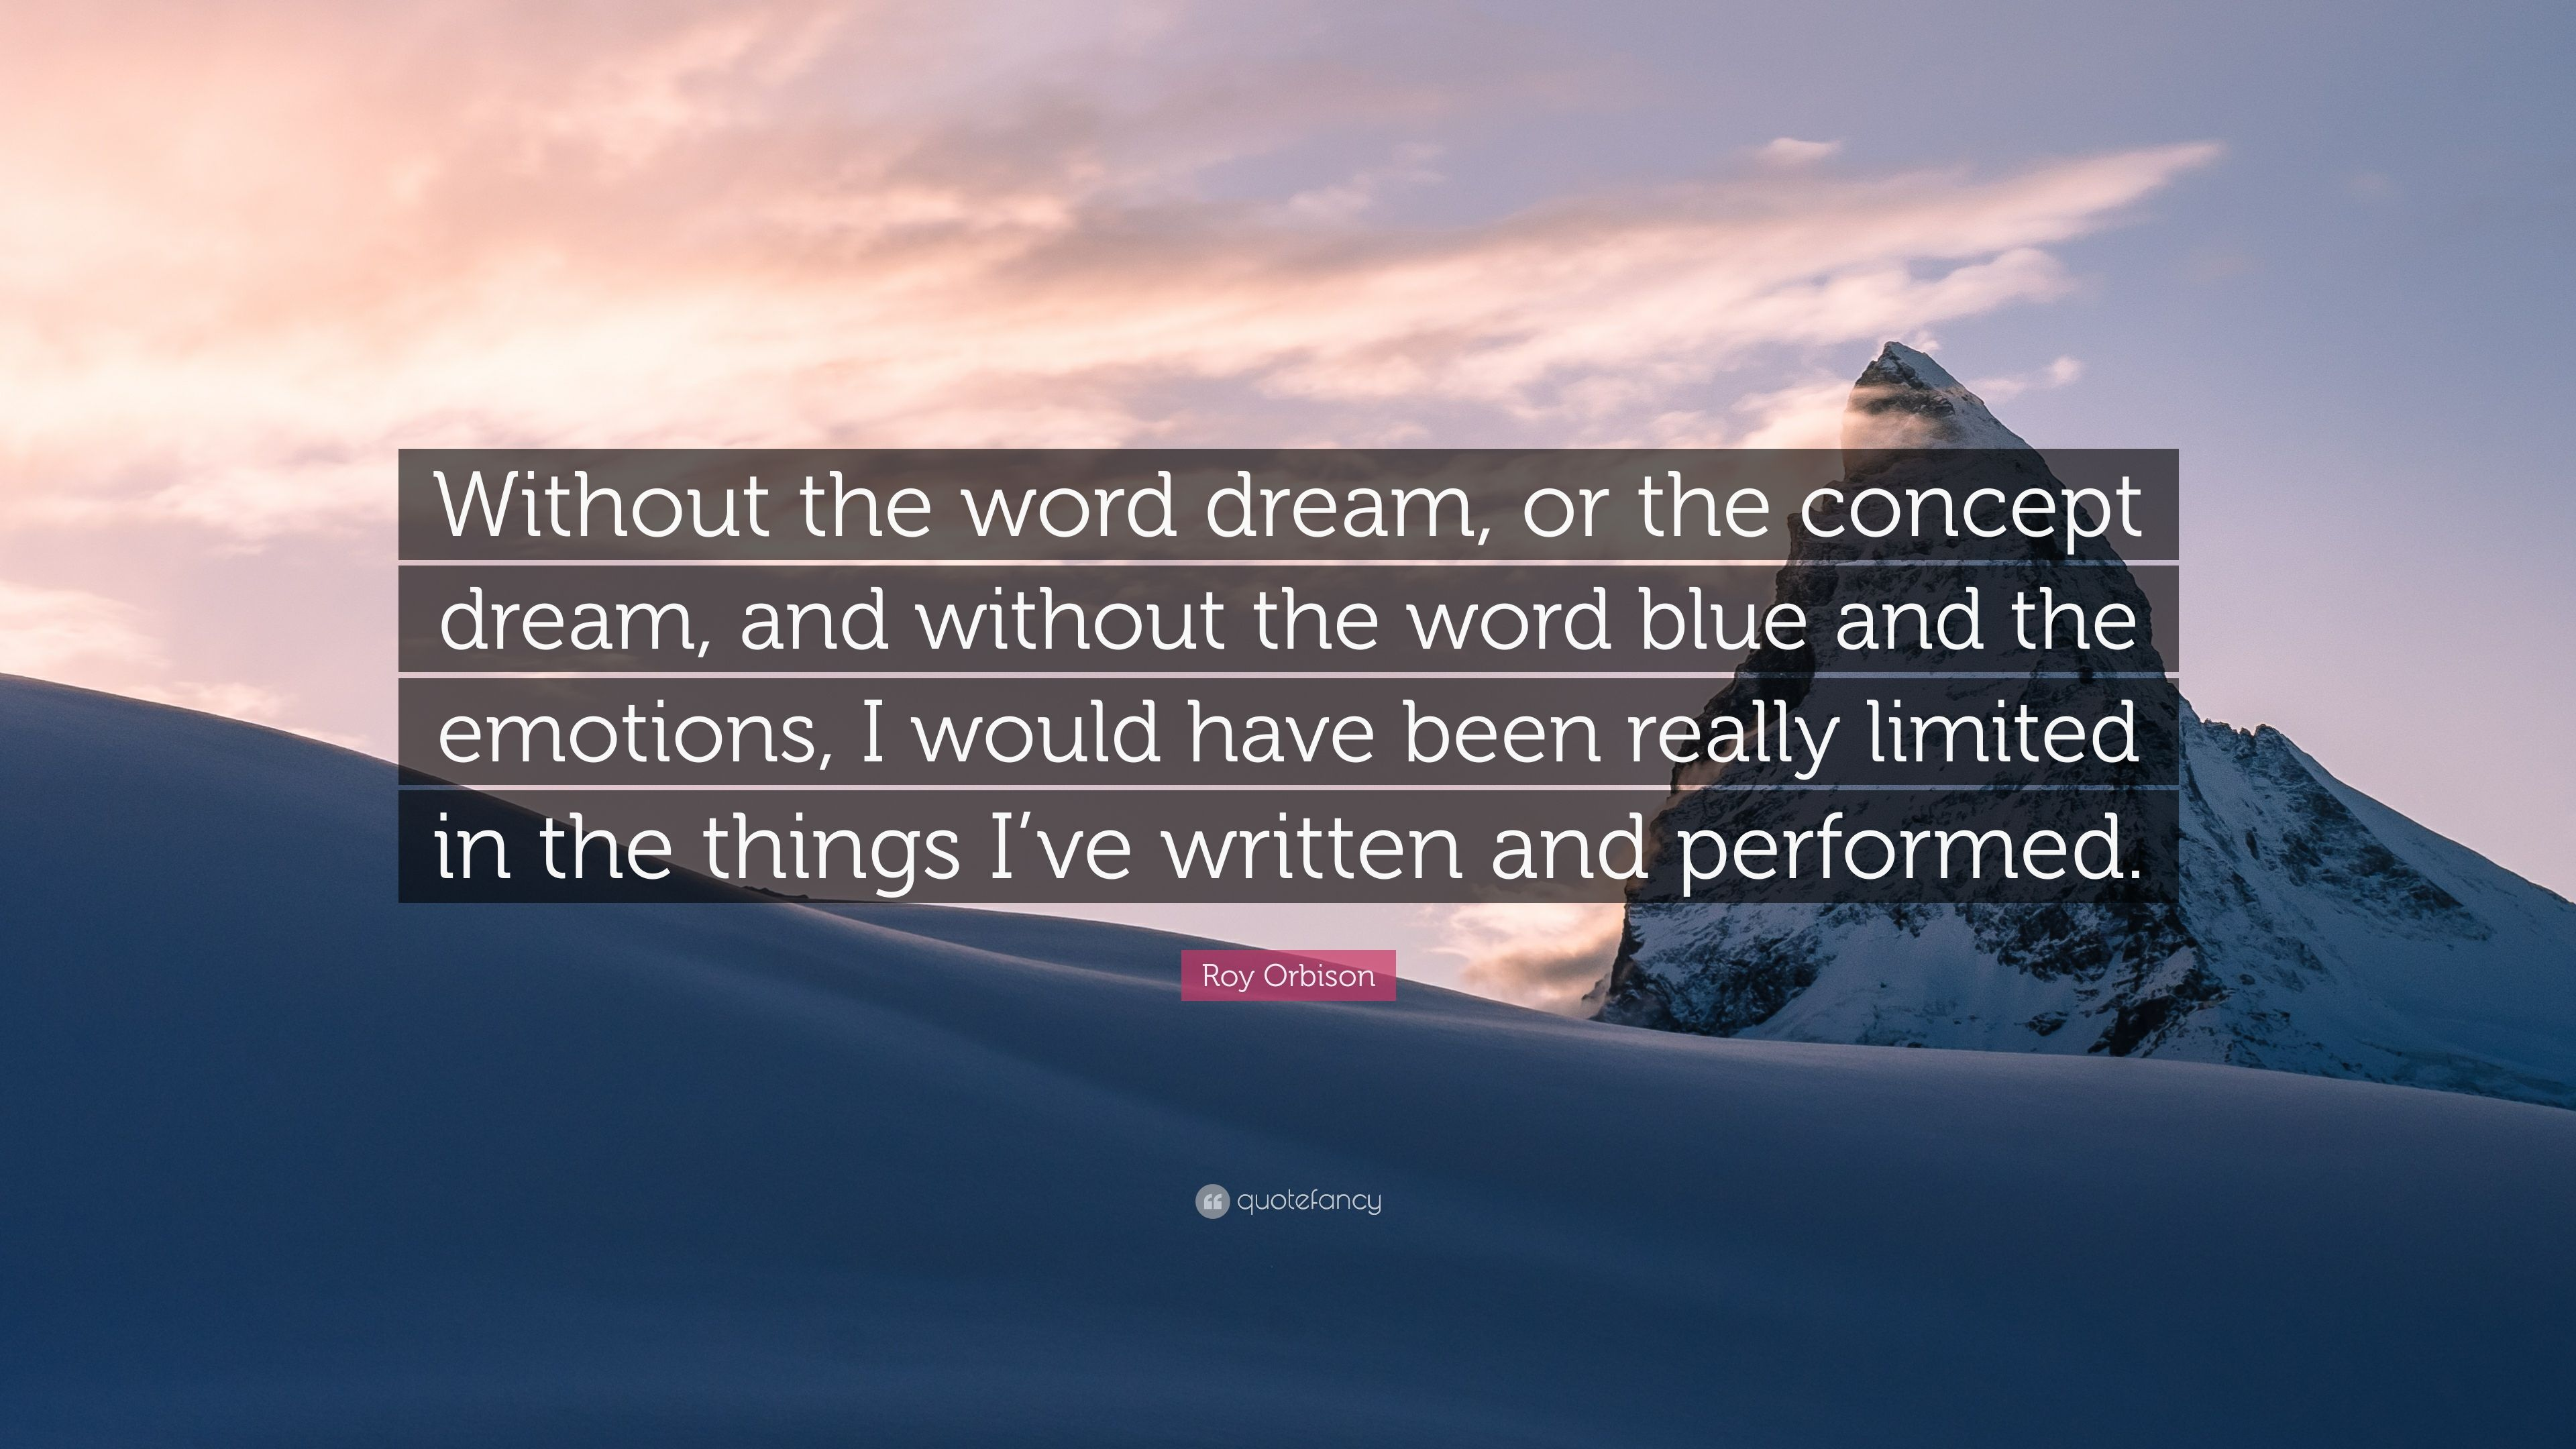 Roy Orbison Quote Without The Word Dream Or Concept And